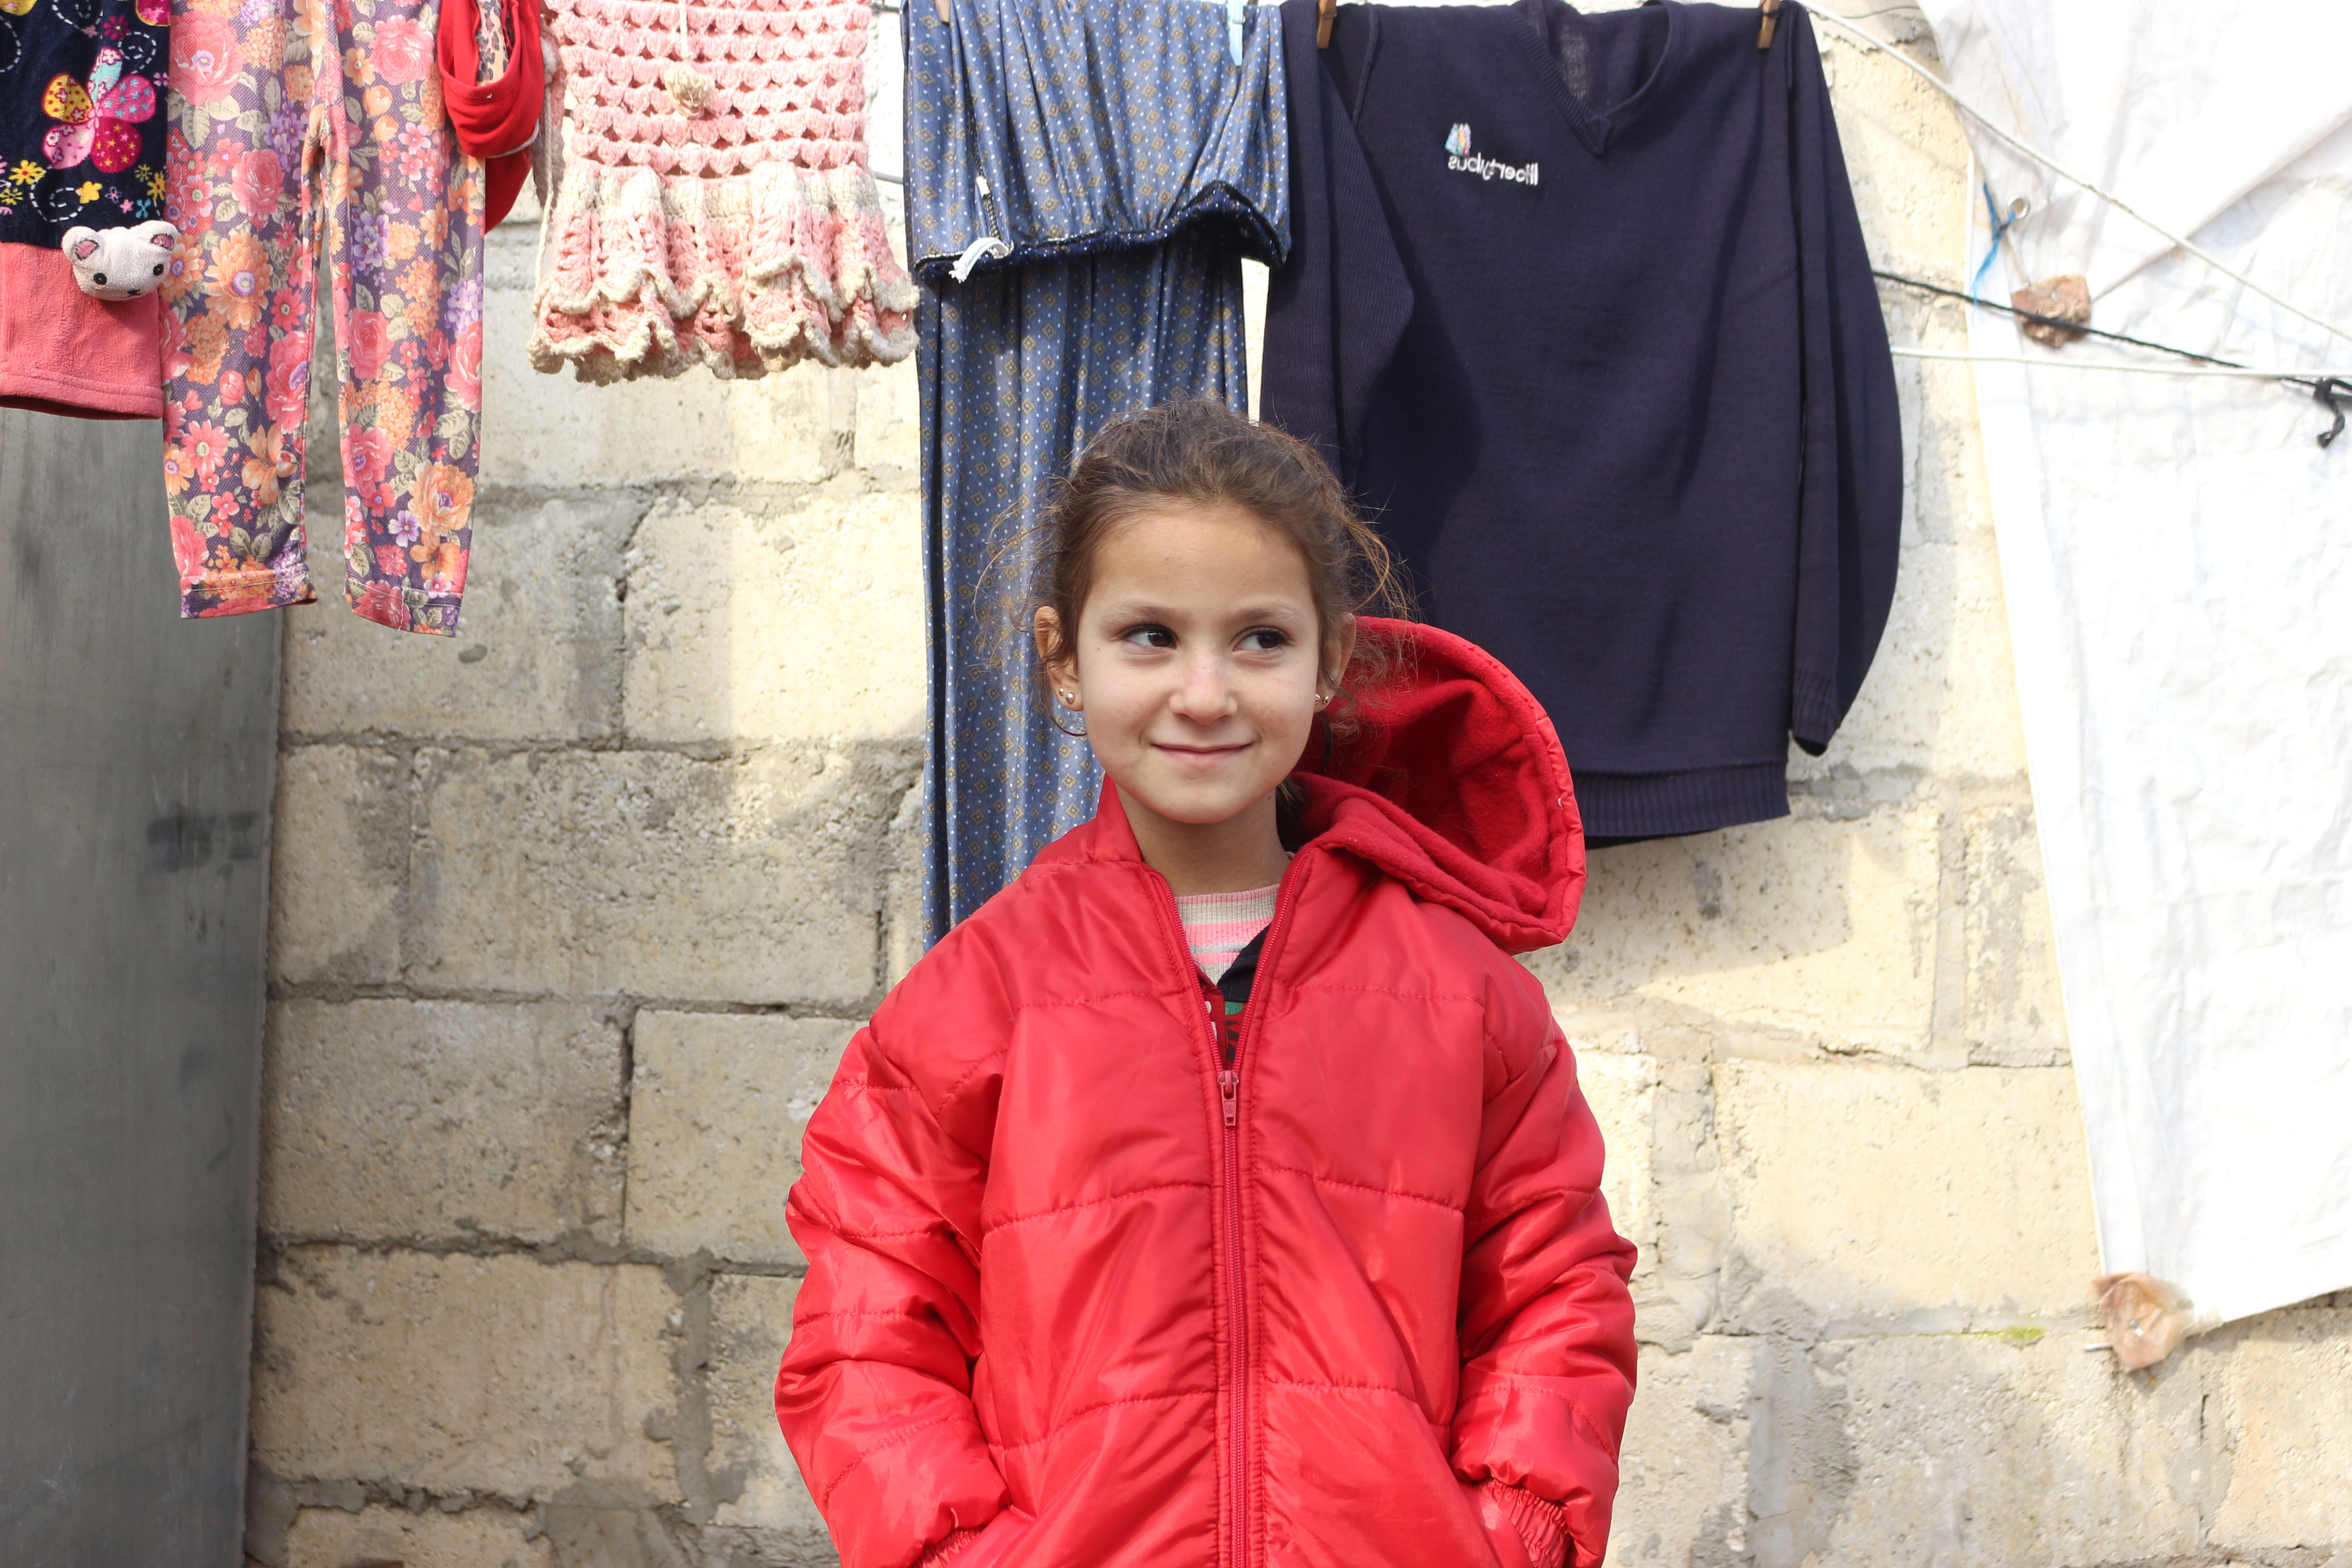 Fatima in her new red jacket